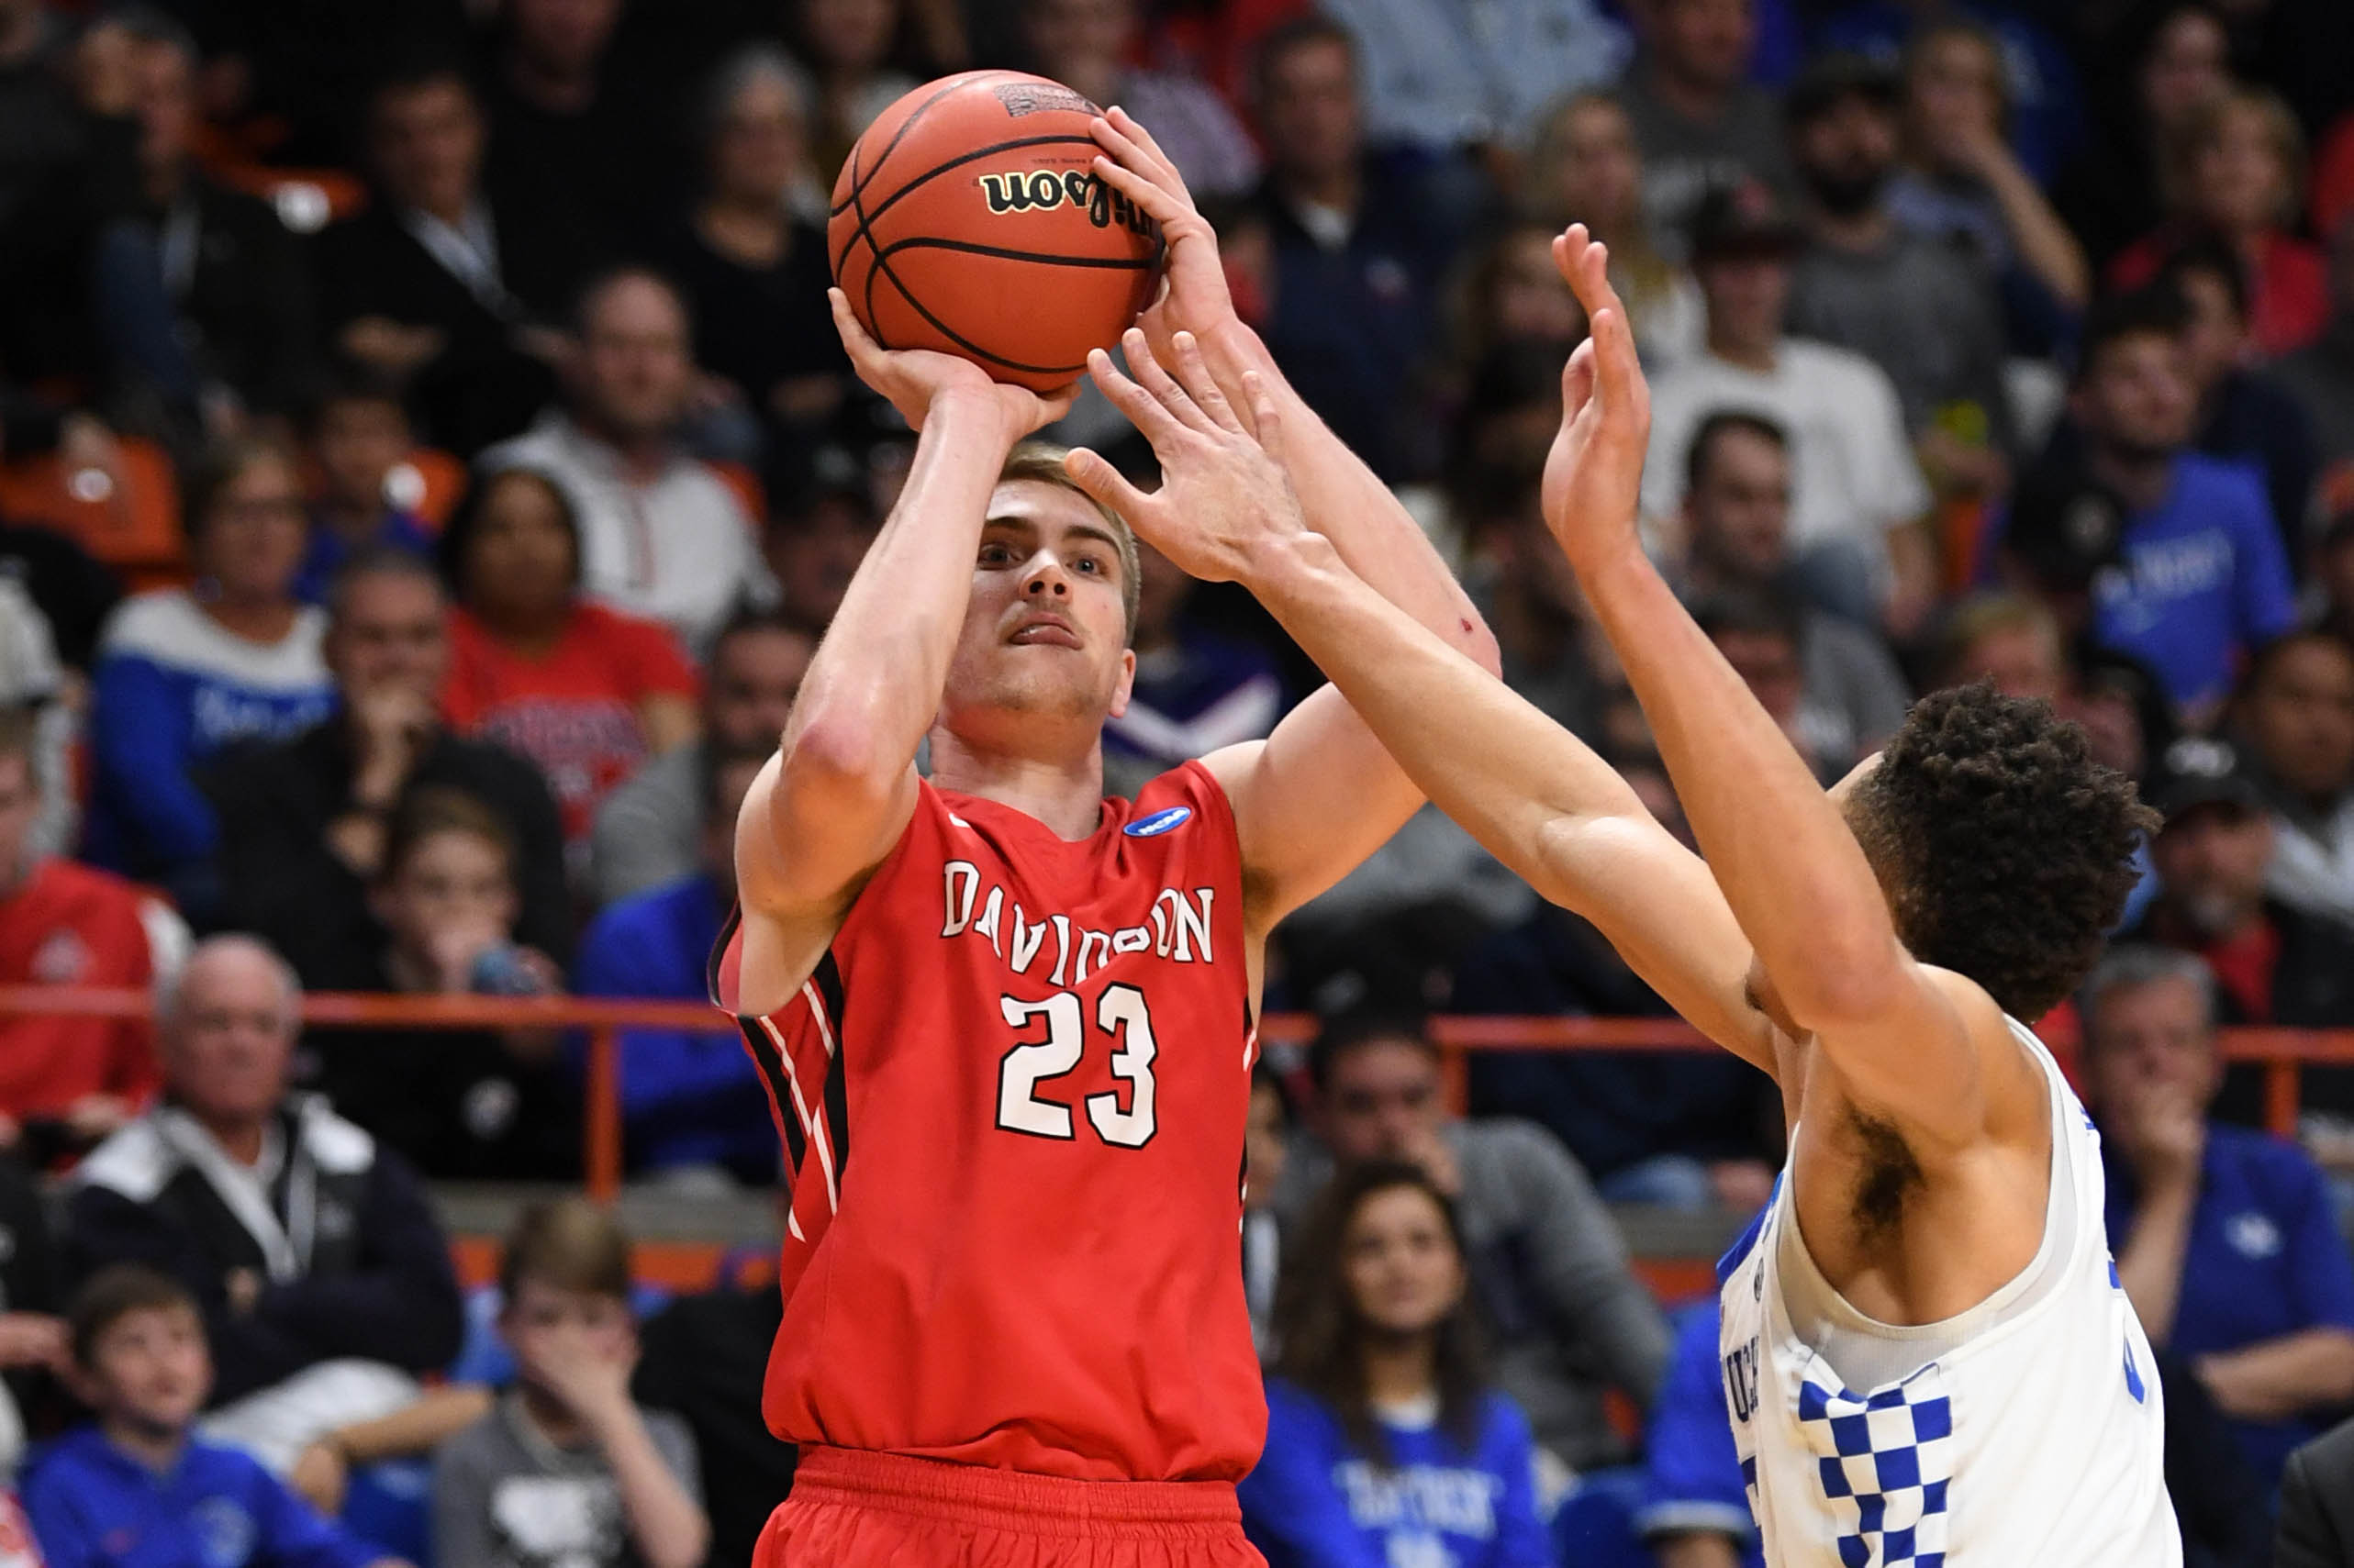 Cats hold off Davidson 78-73 in NCAA opener